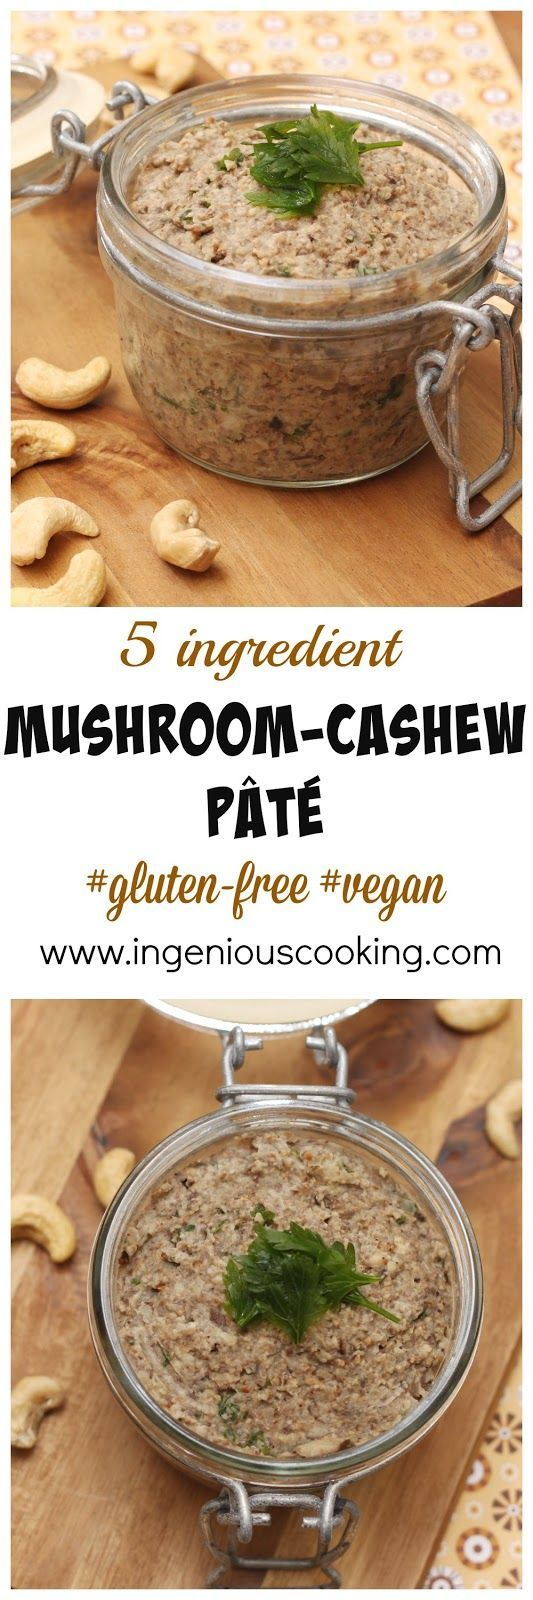 Mushroom-cashew (almond?) p�t� - simple vegan spread made with only 5 ingredients in under 20 minutes!